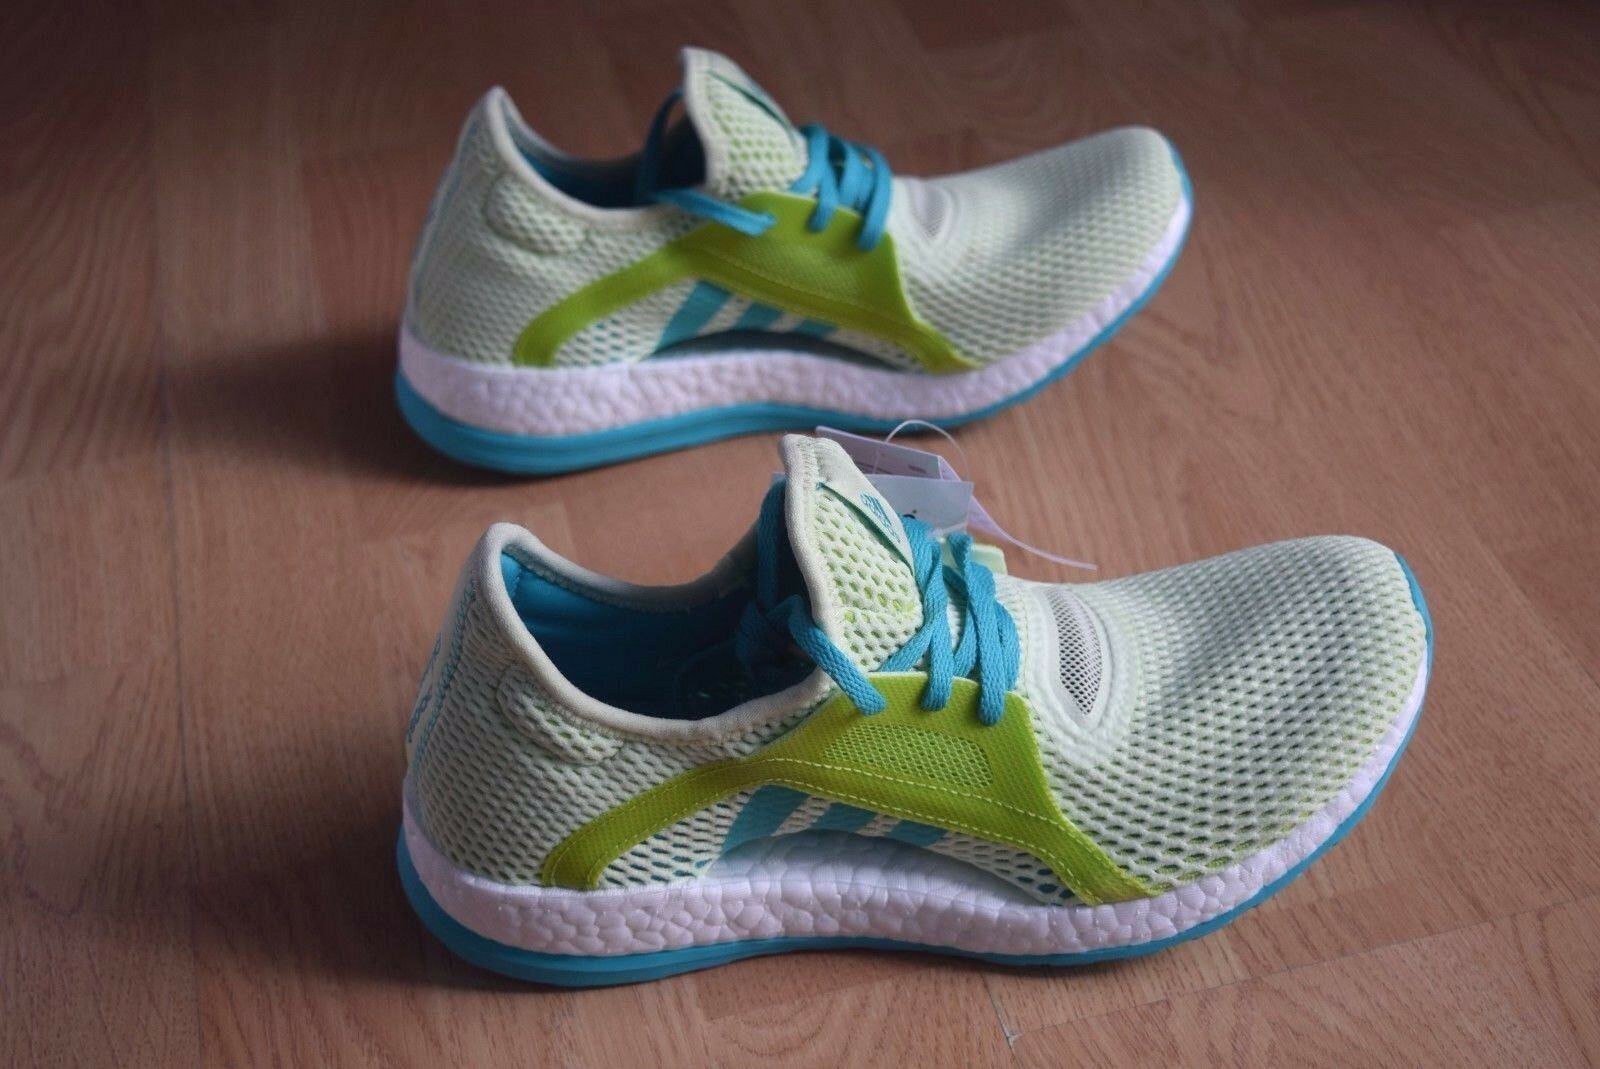 ADIDAS PURE BOOST x TR 36,5 41 42,5 aq6697 Clima Cool Ultra TRAINER Yeezy Energy